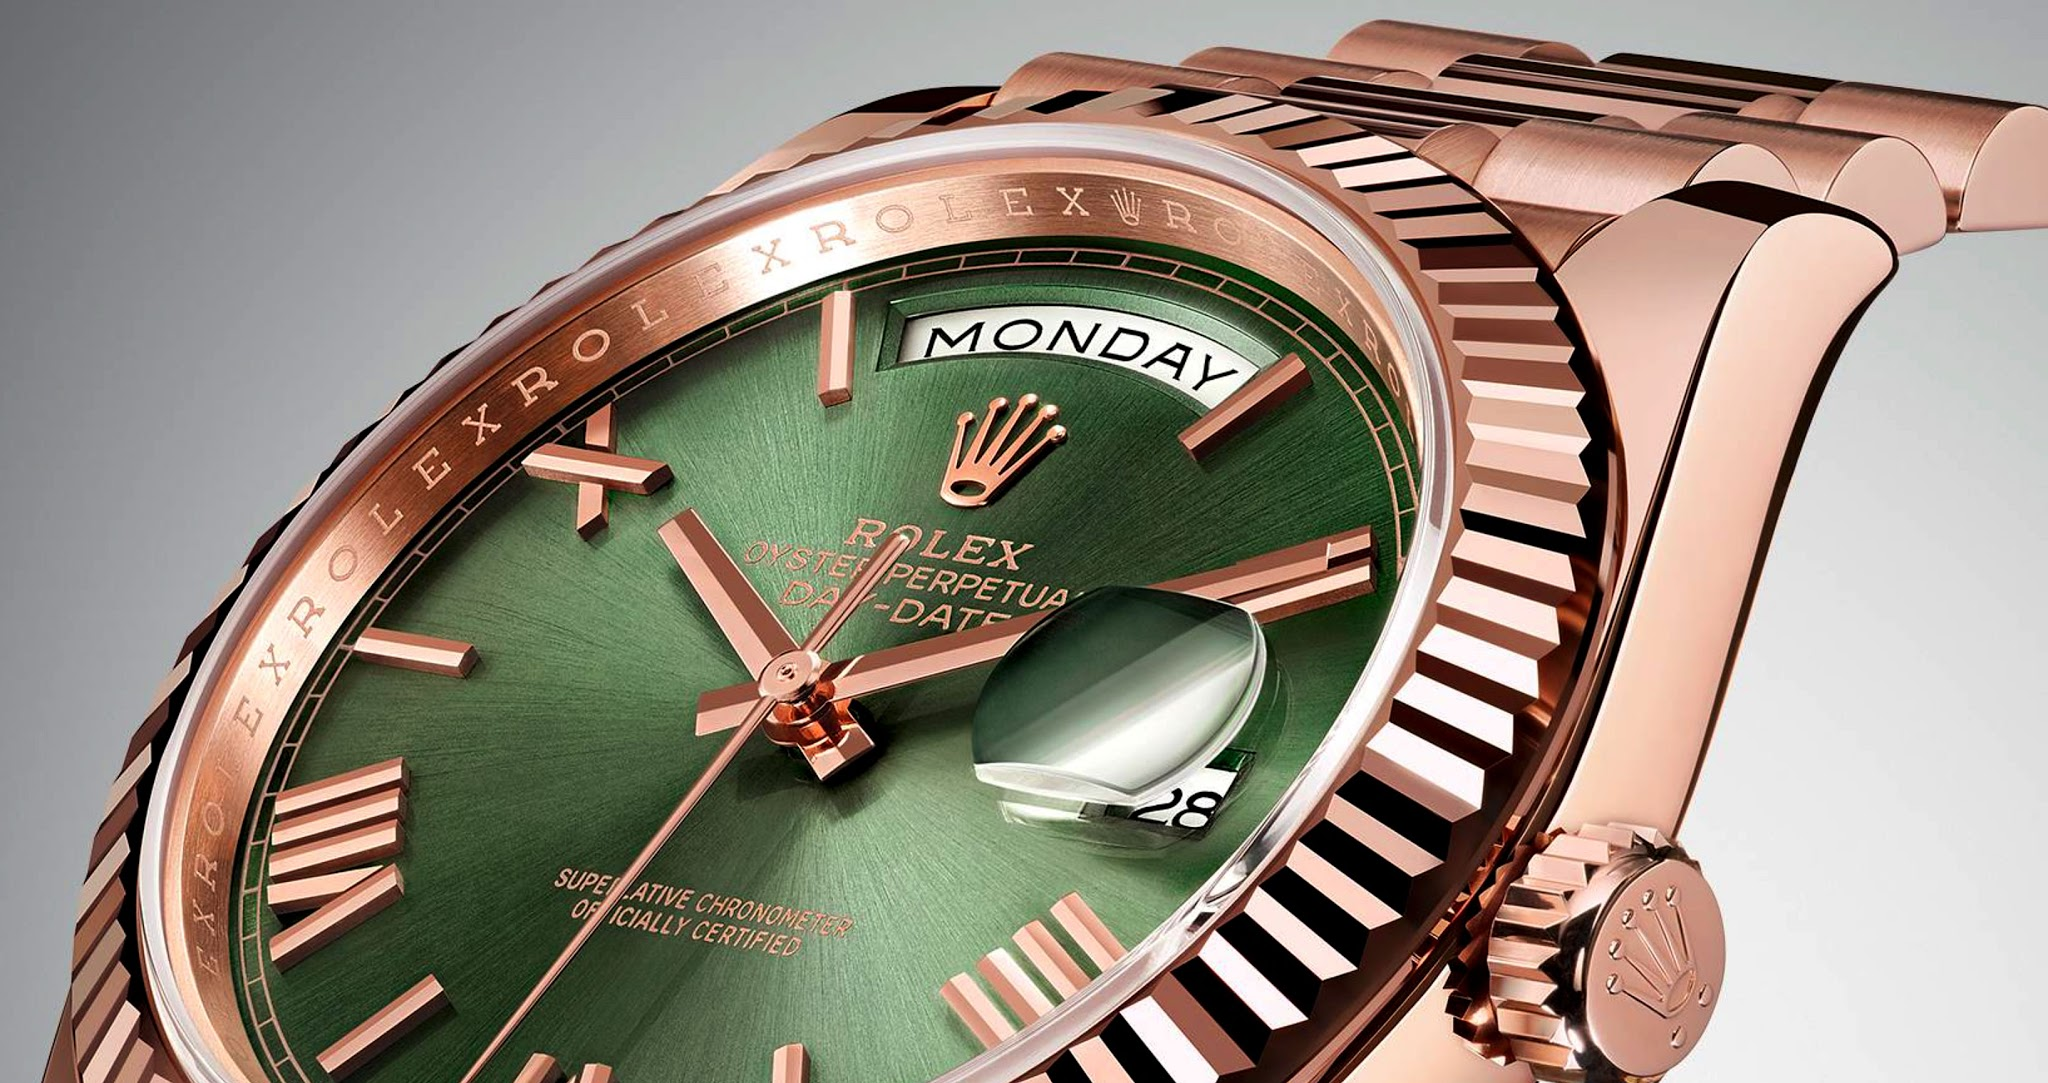 Legitimate And Helpful Advice About Online Shopping RolexDayPresident